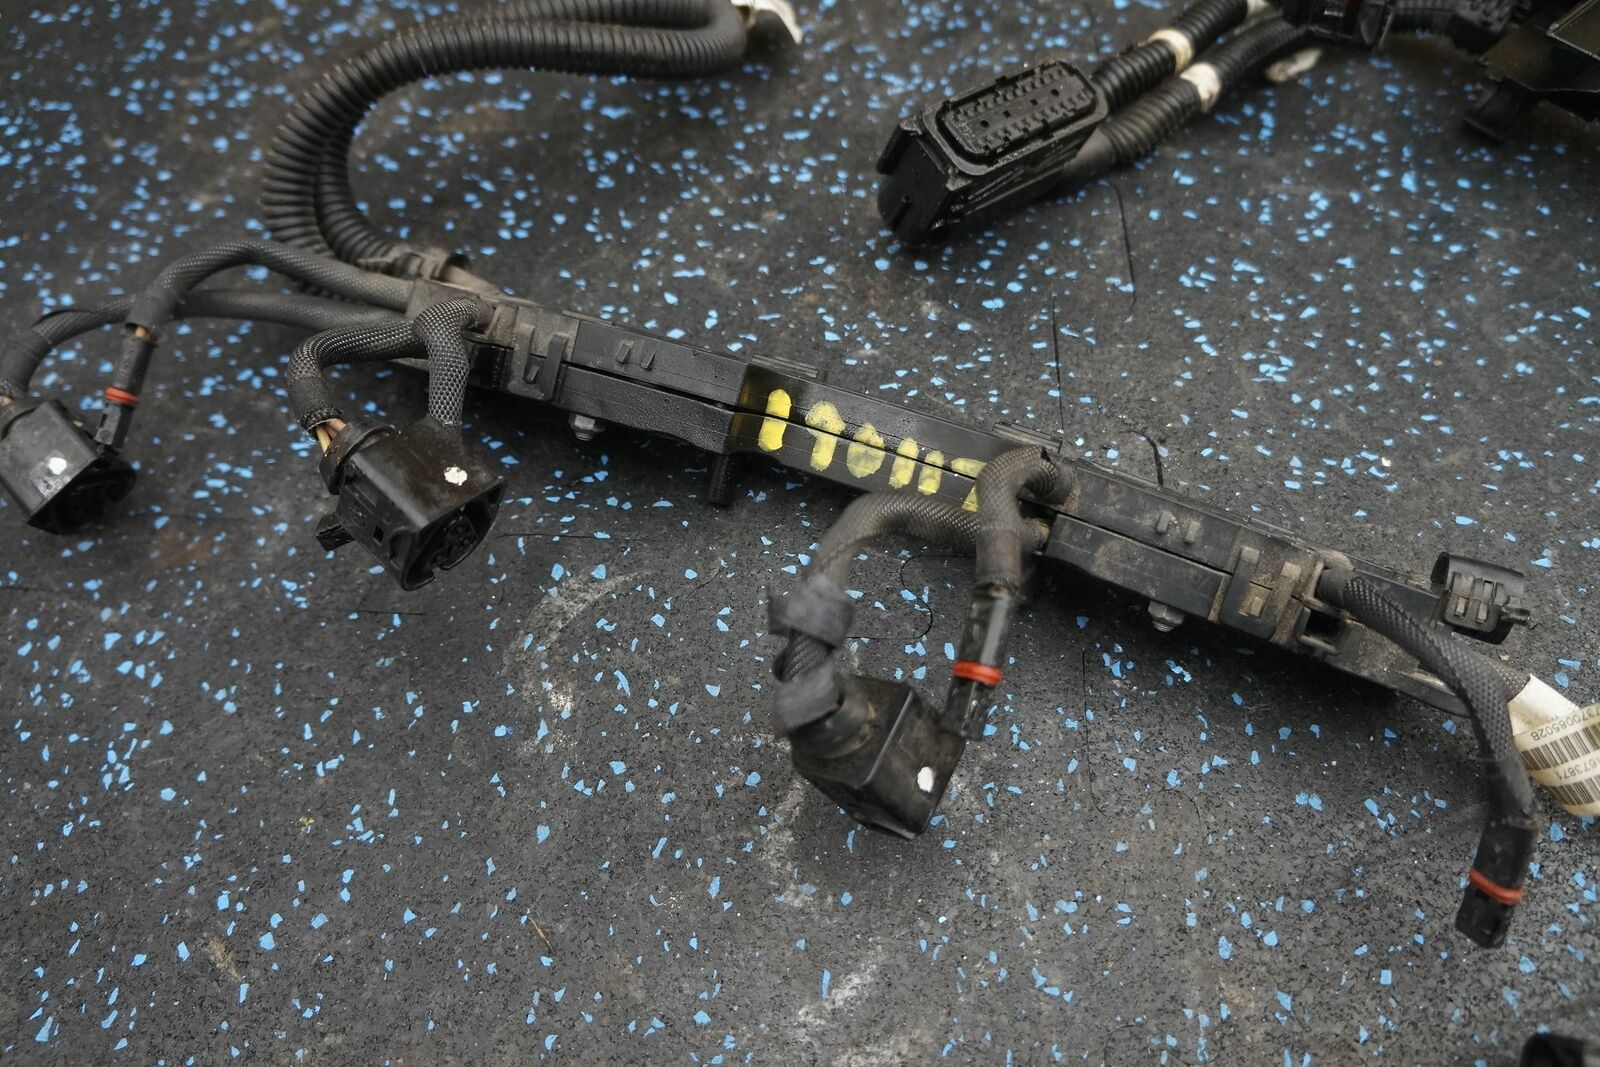 set engine ignition module wire harness 12517843326 bmw m5 m6 f10 f12 2012 17 Stepper Motor Wire Harness